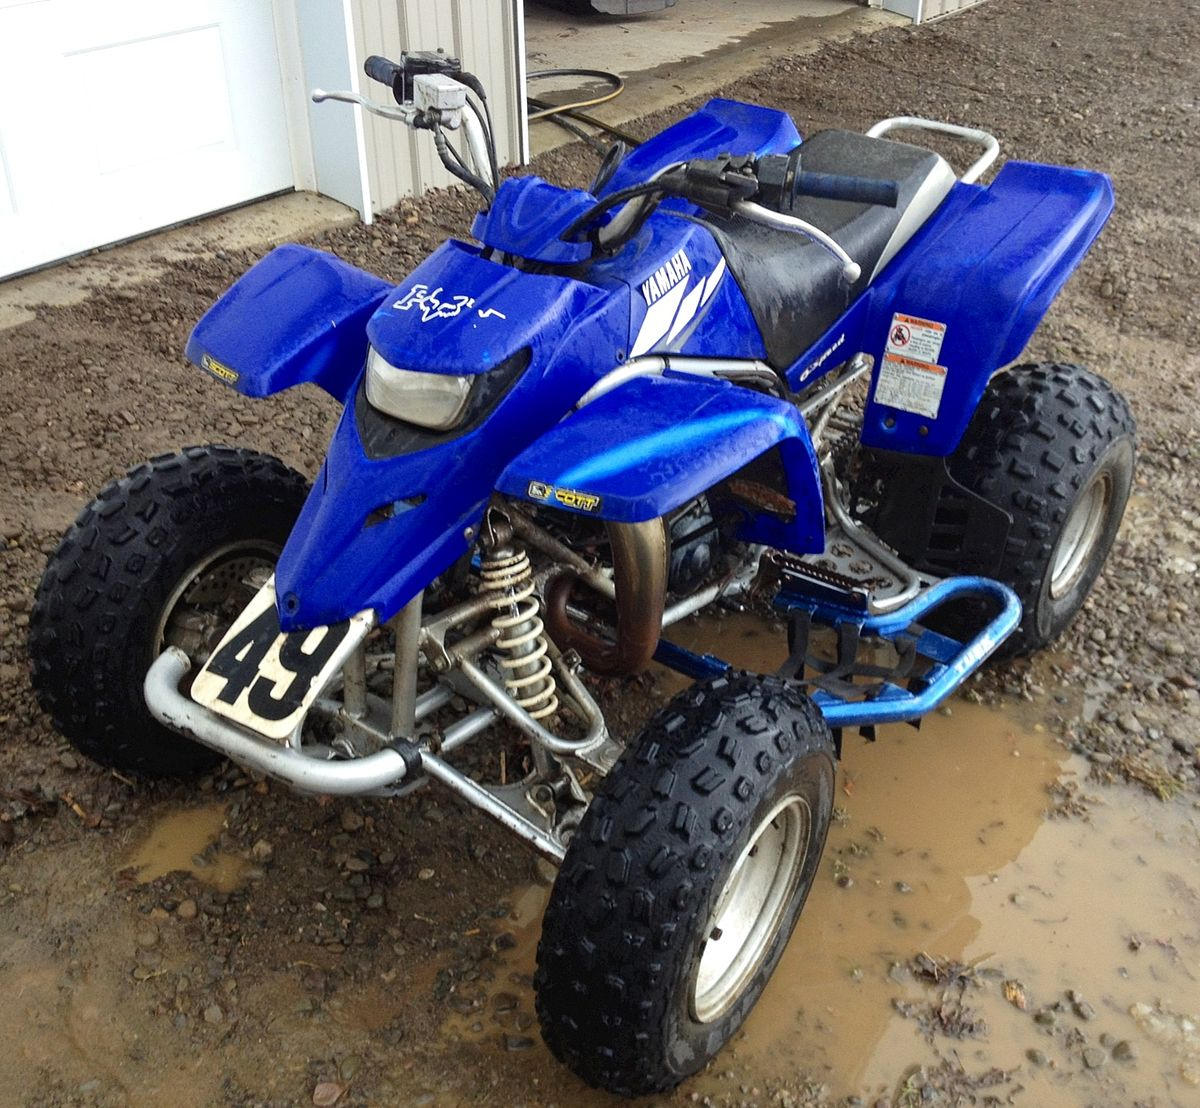 Yamaha Banshee Parts Miami